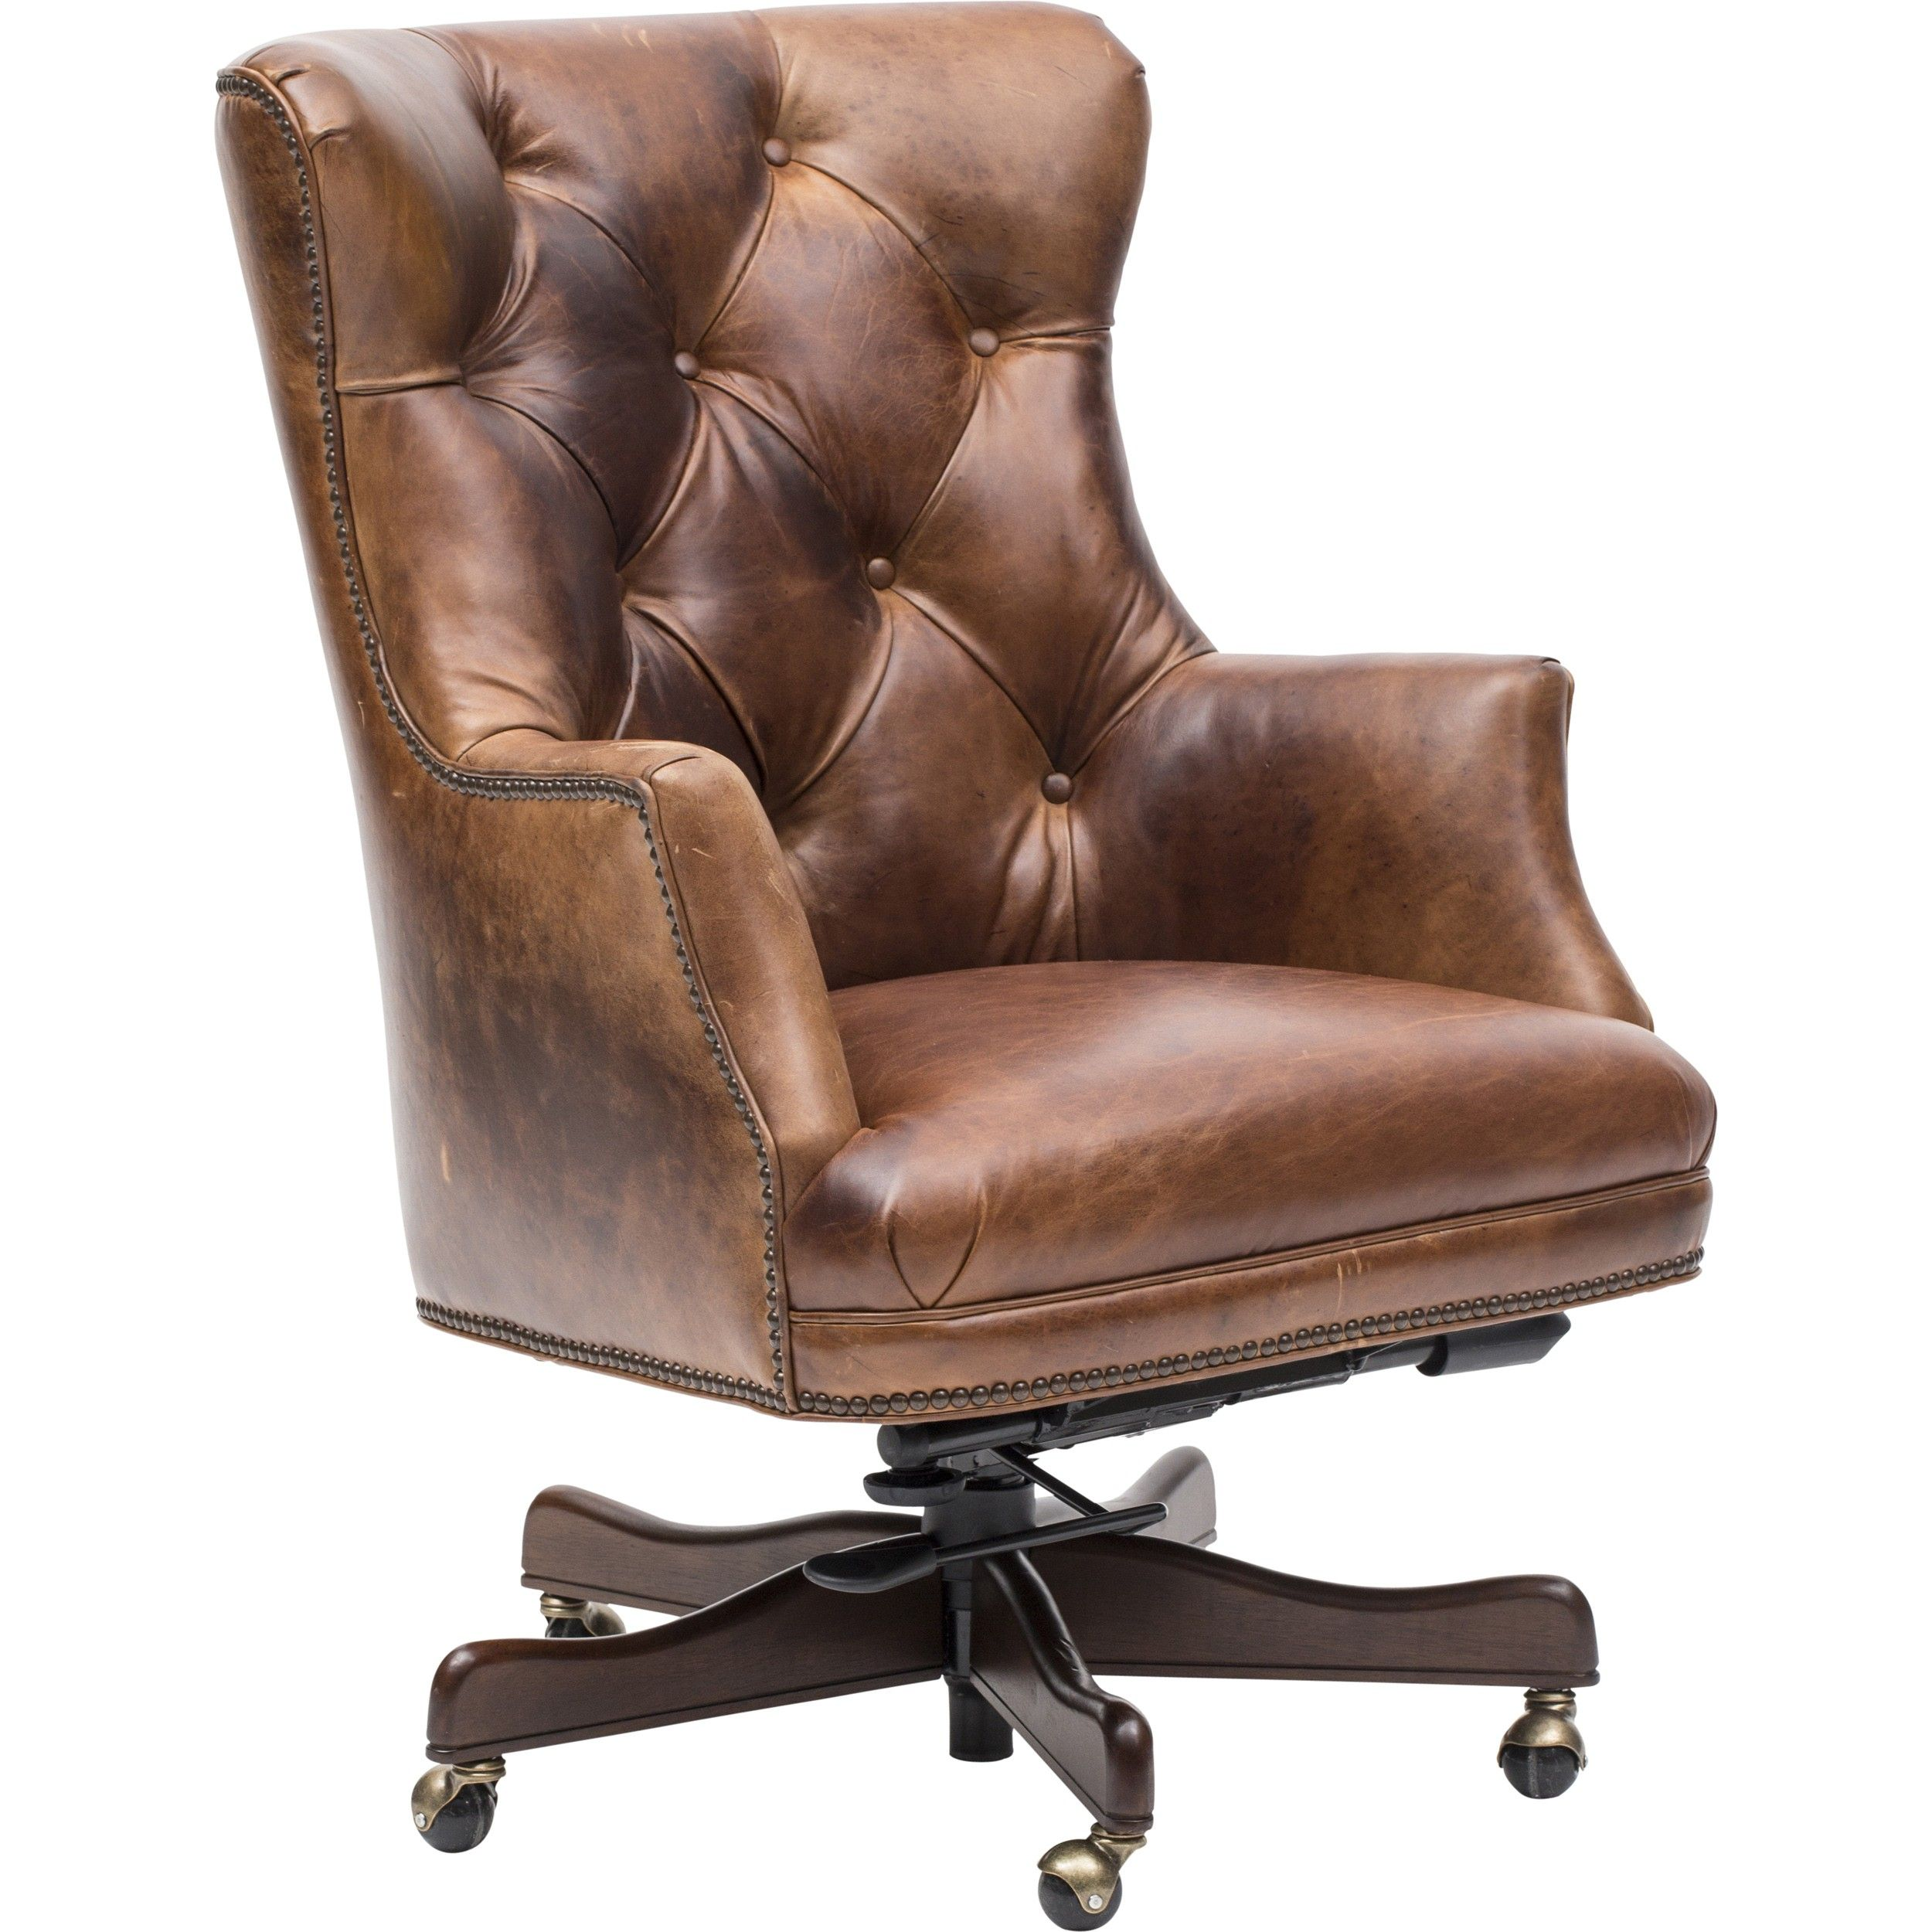 Theodore Executive Leather Office Chair Luxury Office Chairs